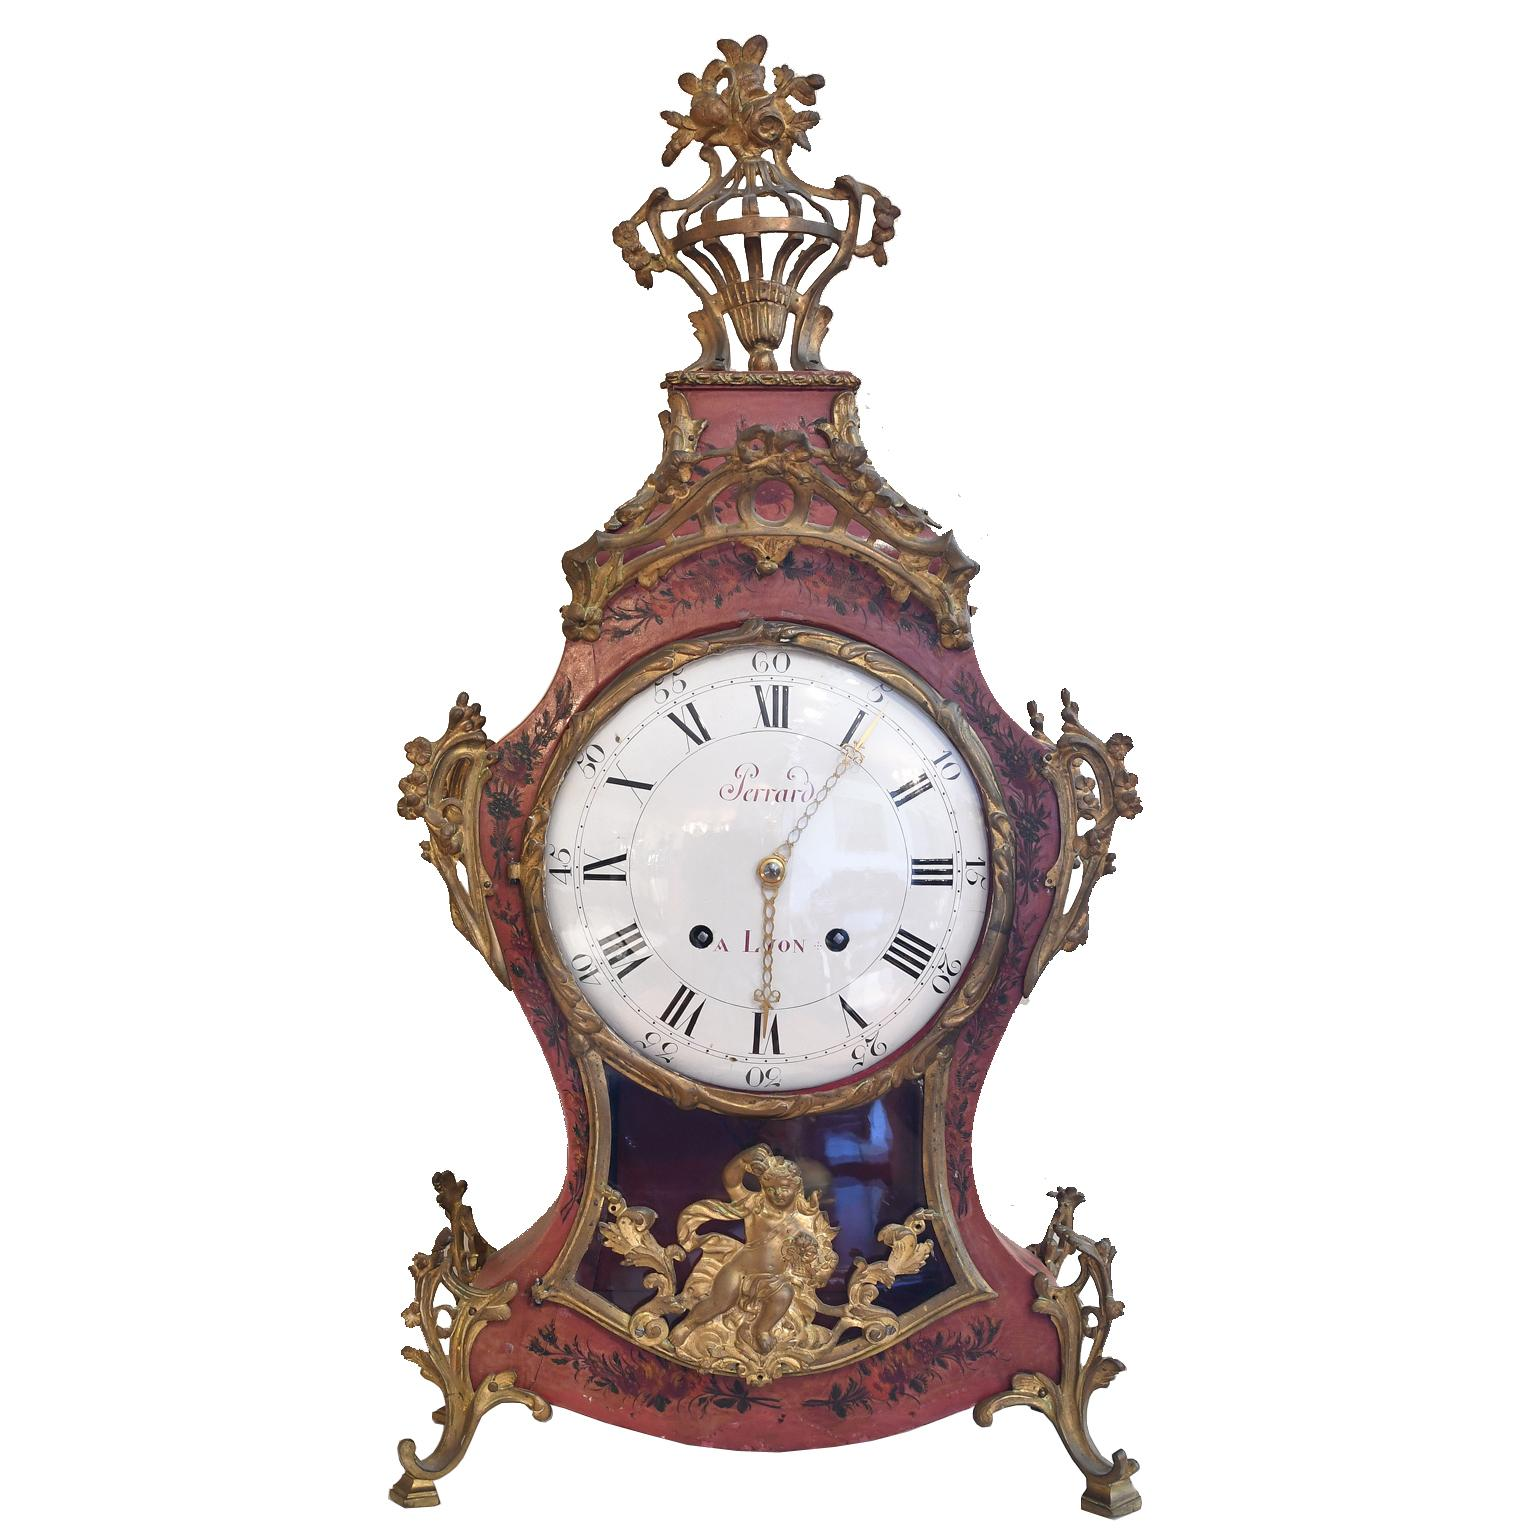 French Louis XV Mantel Clock with Ormolu and Hand Painted Flowers by Perrard